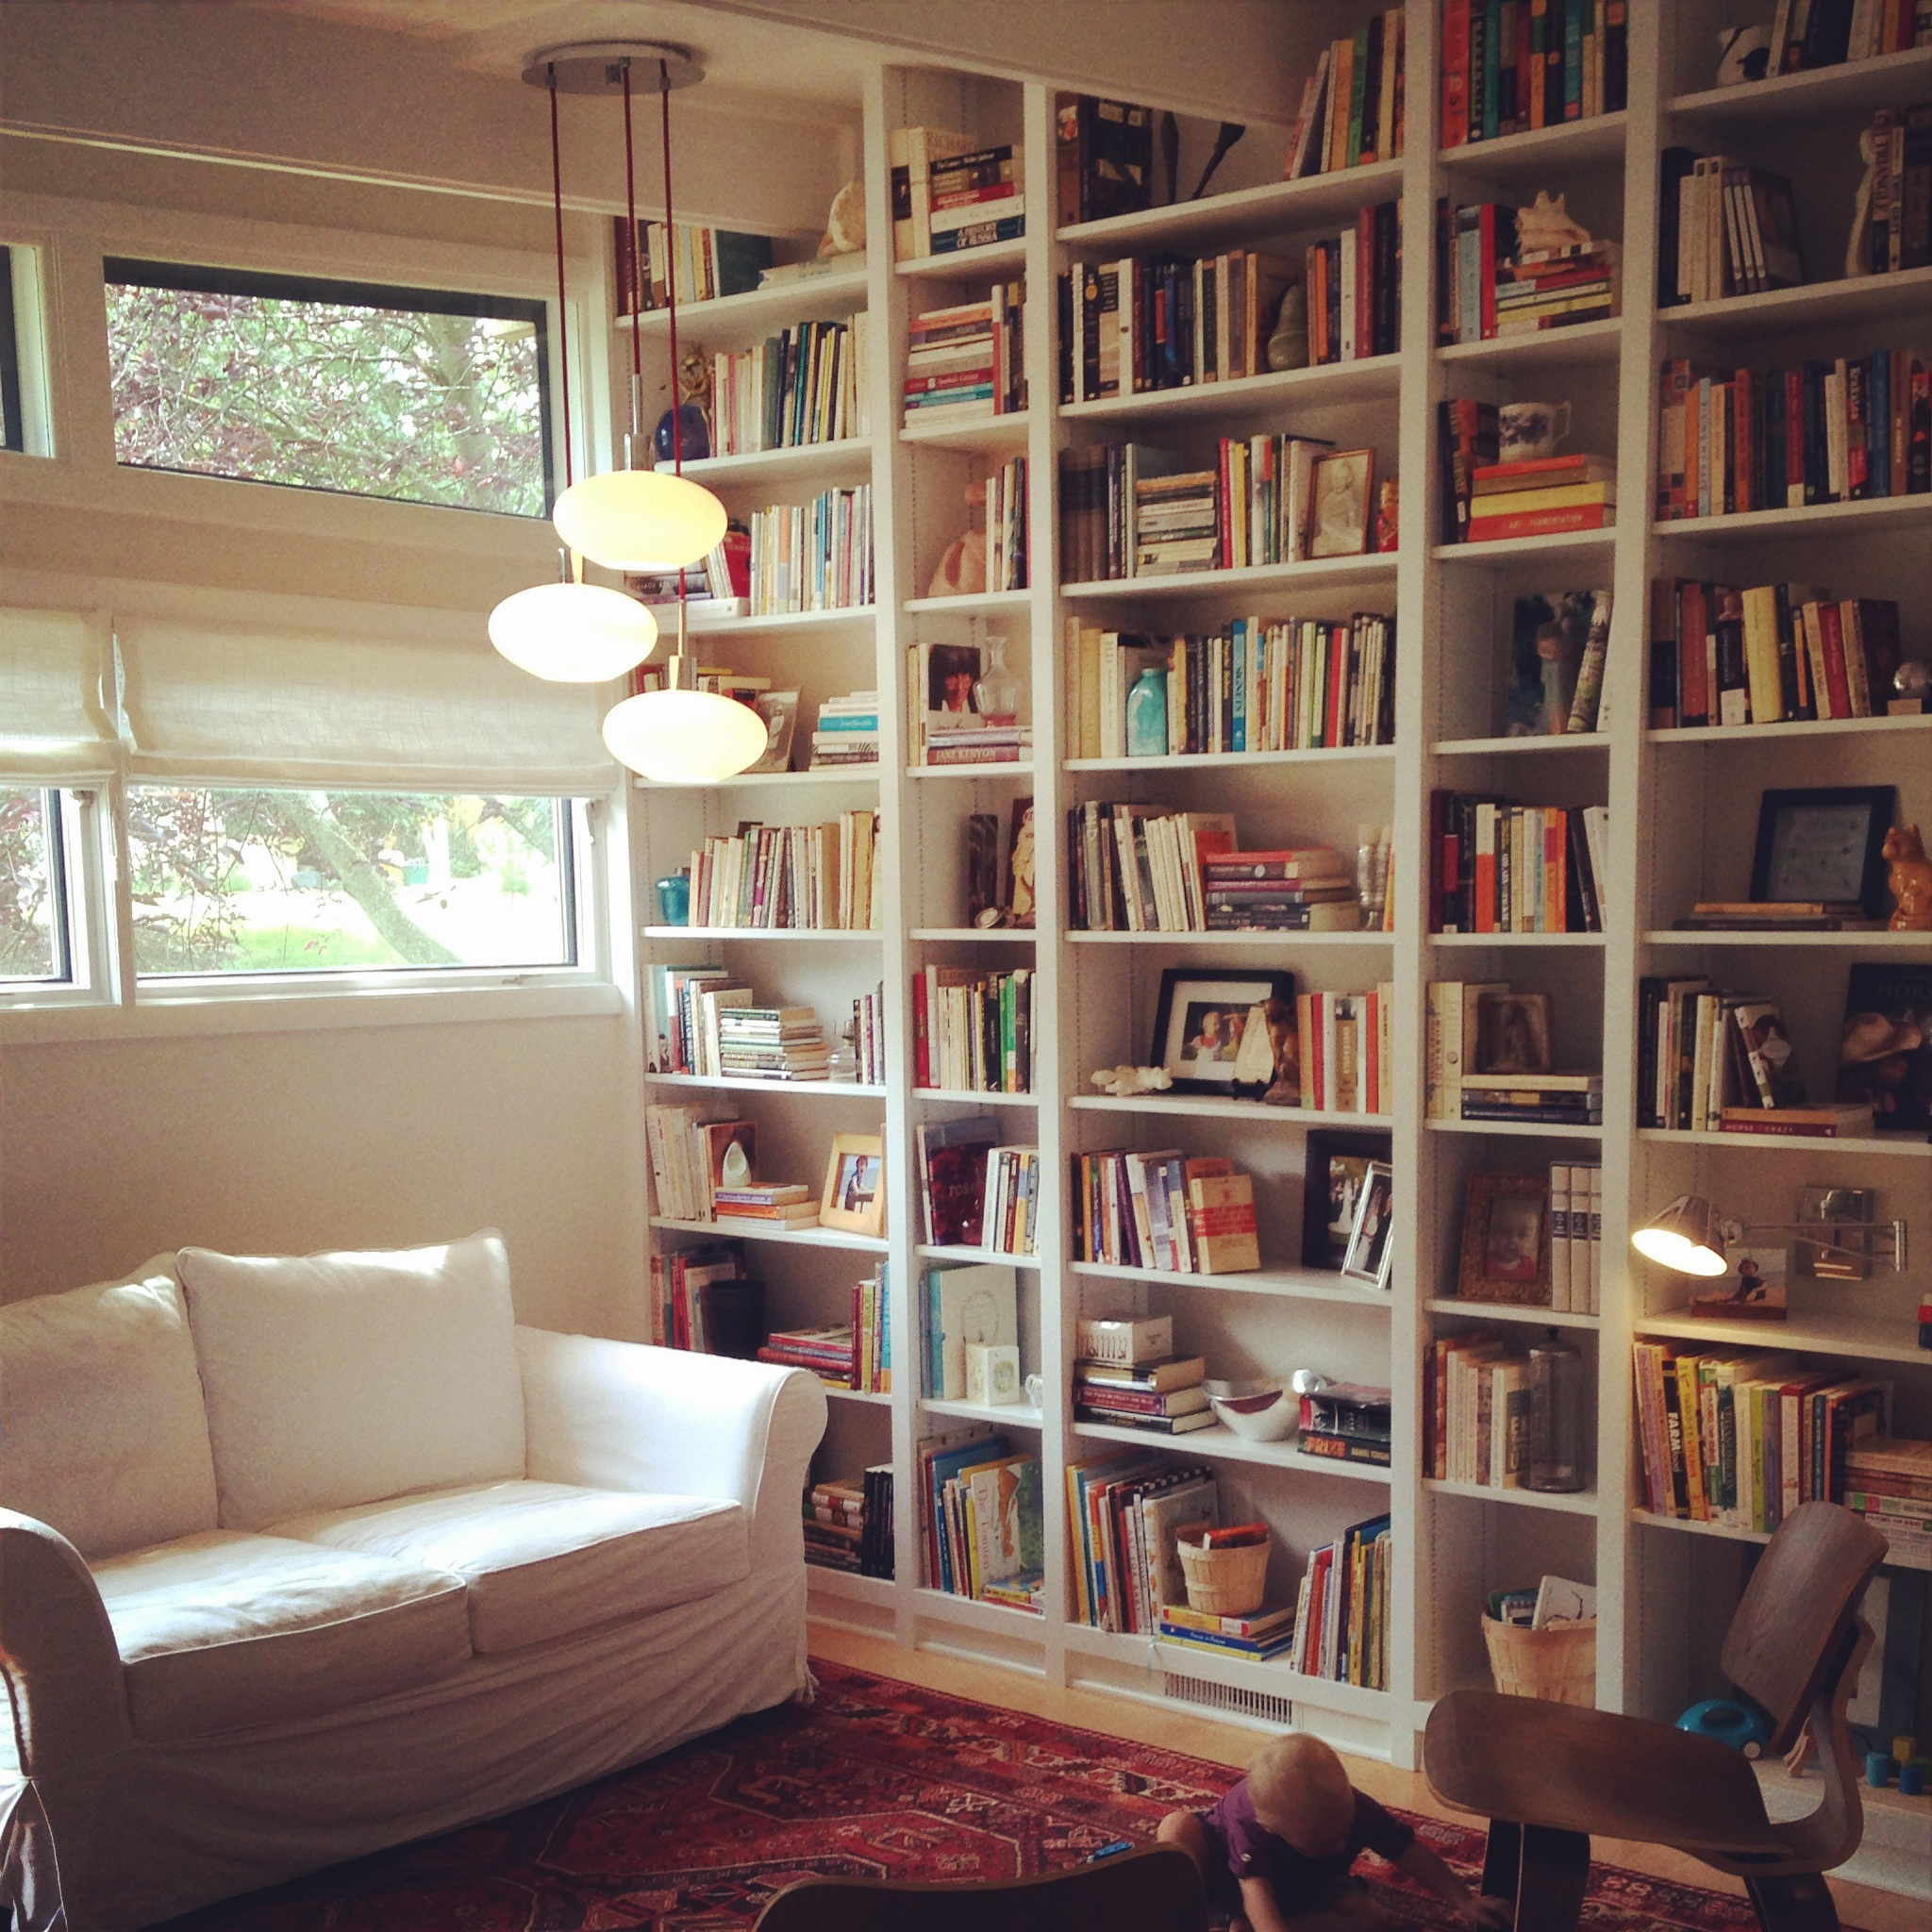 Lots of poetry books here. I love this house, and I loved getting to peruse all the books while we staged the shelves: Anne Frank and Emily Dickinson and Virginia Woolf, oh my! (Nb. New sofa still to come!)